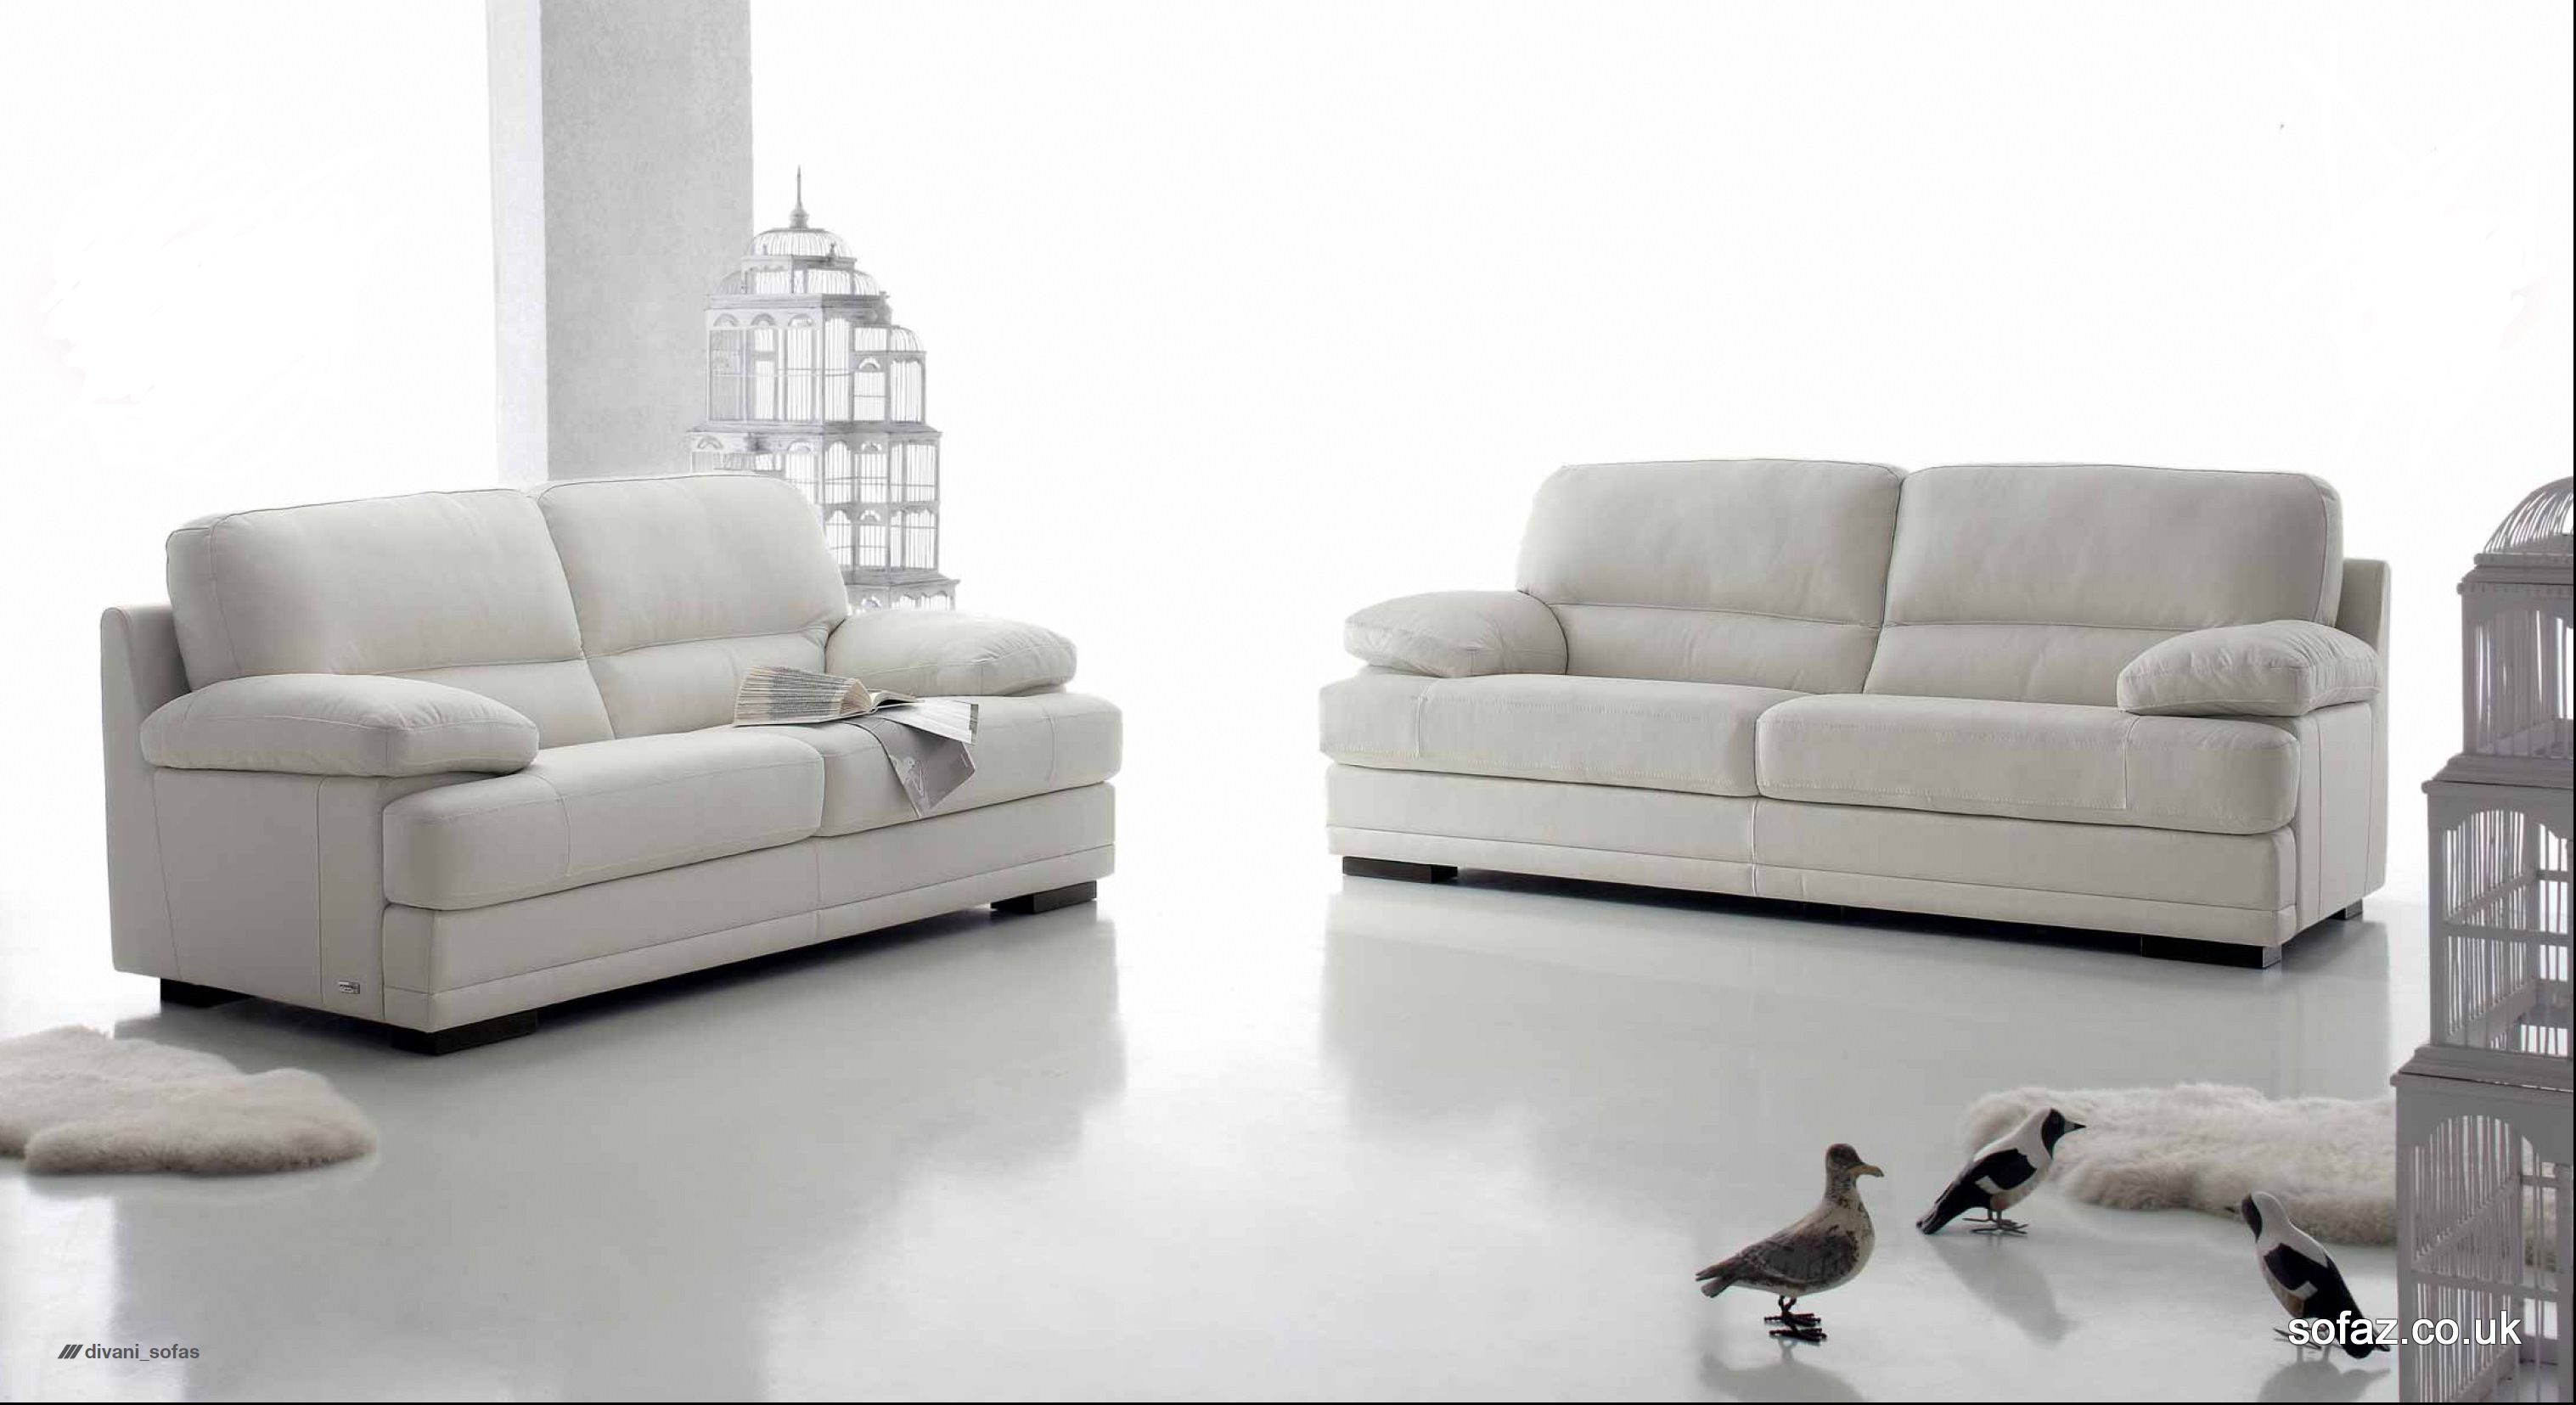 Luxury Italian Leather Sofas Magritte Modern Leather Sofa By Contempo Designer Italian Thesofa Dinamic News